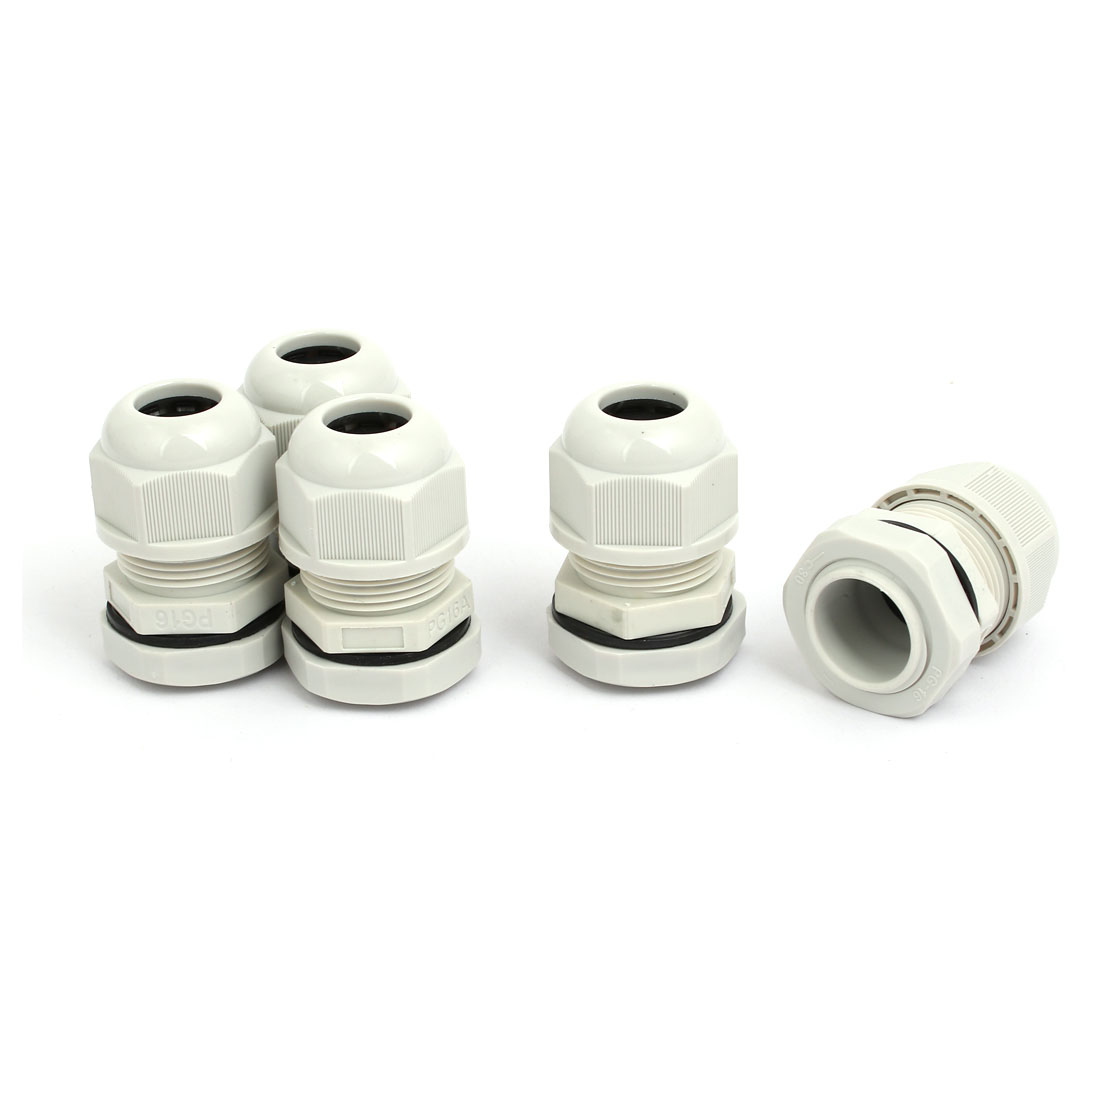 PG16 2mm Adjustable 4 Holes Nylon Cable Gland Joint Gray 5pcs